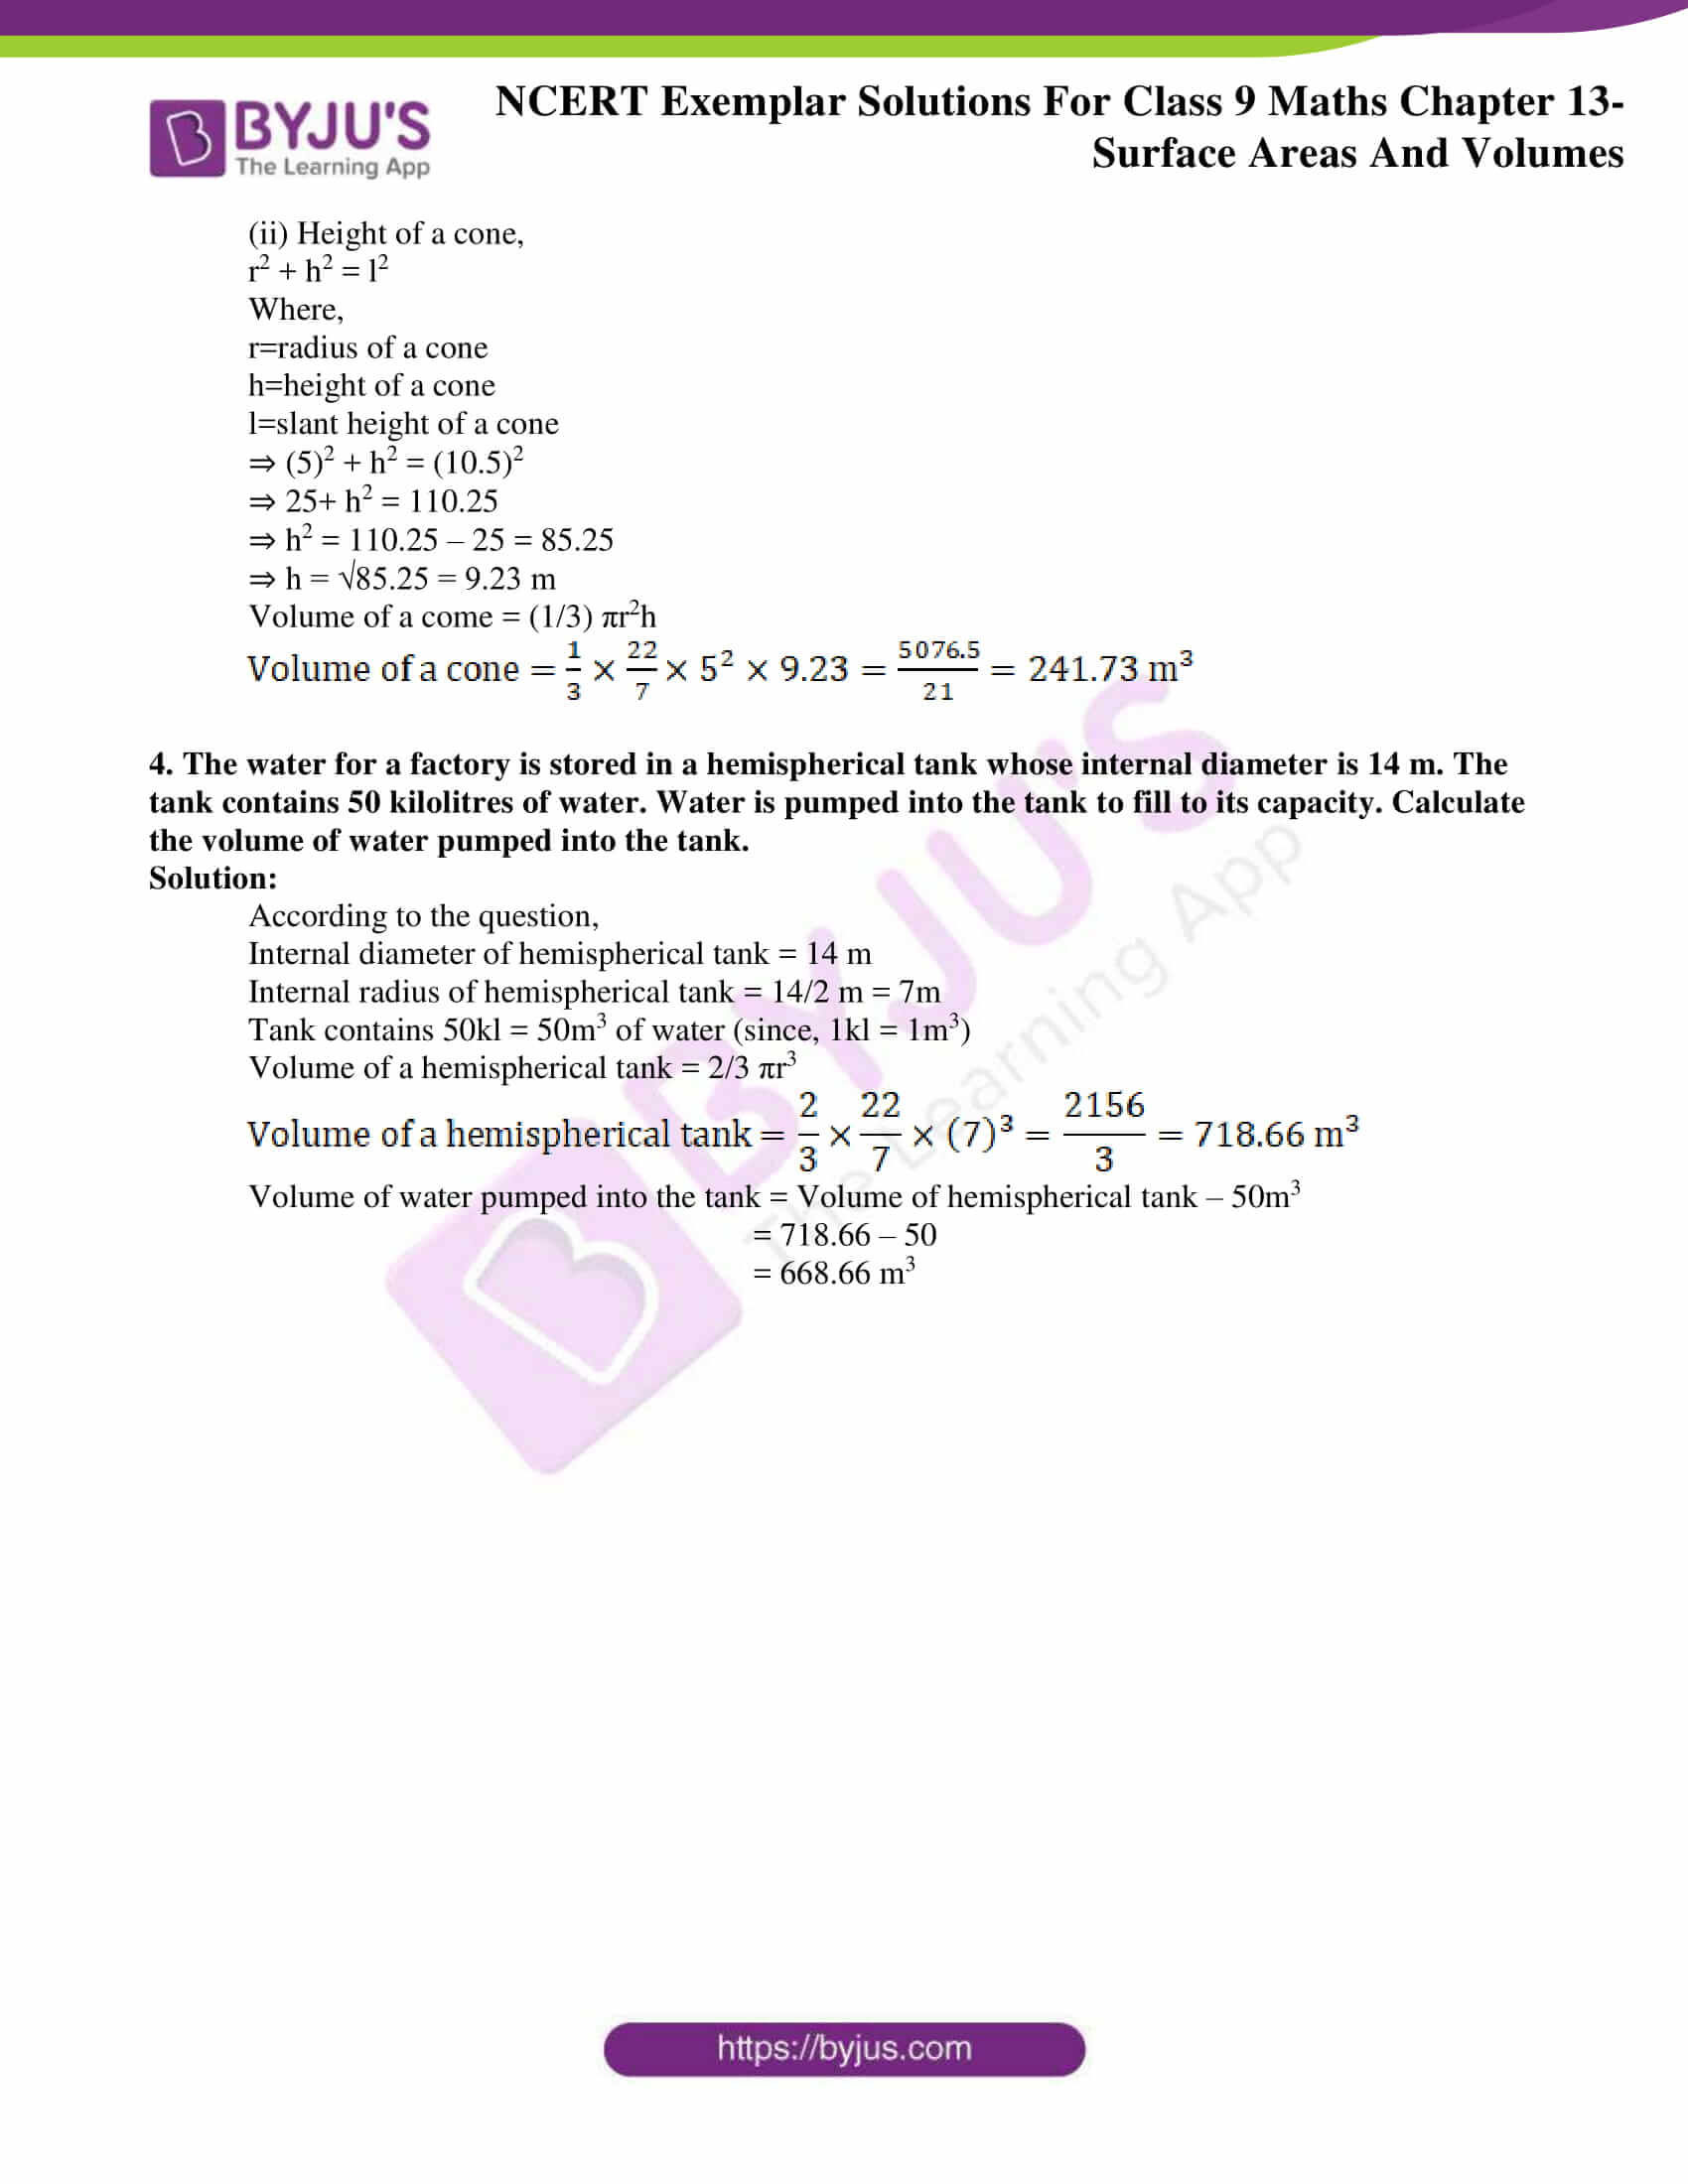 ncert exemplar solution class 9 maths chapter 13